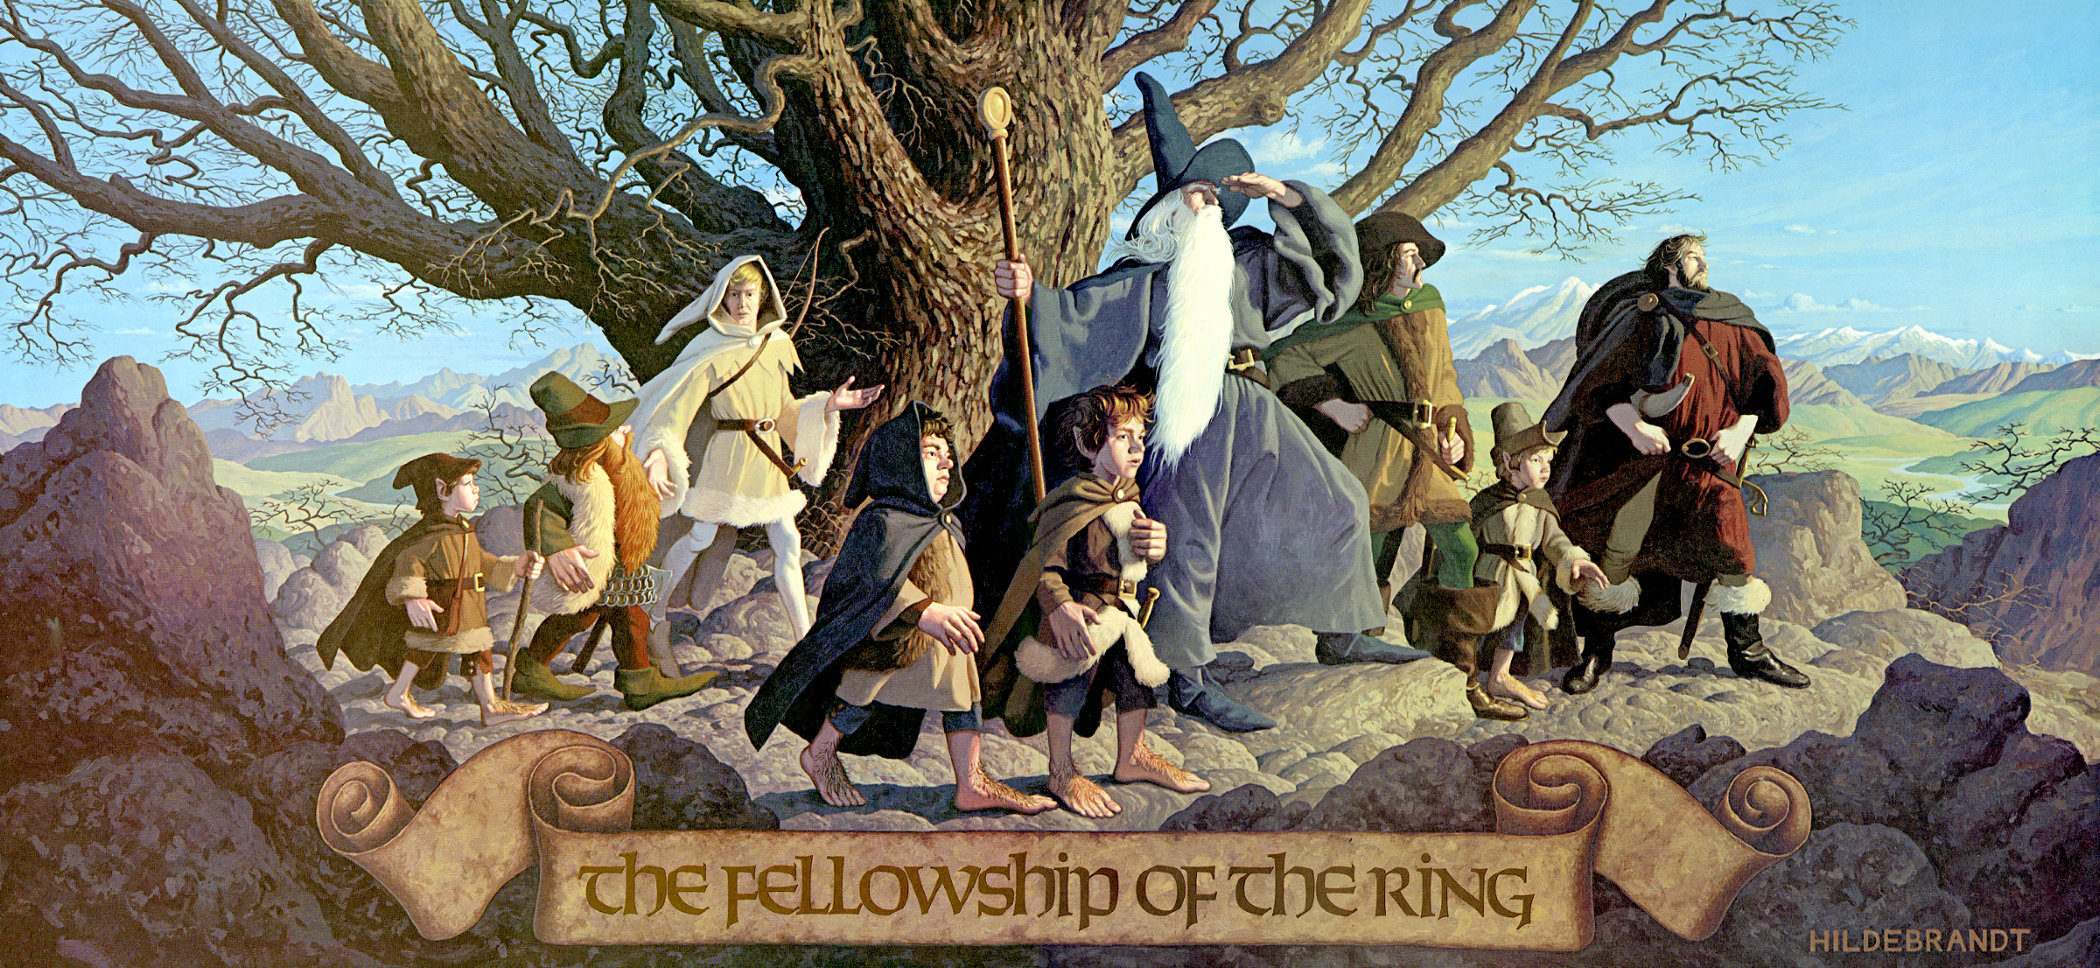 Chapters In Fellowship Of The Ring